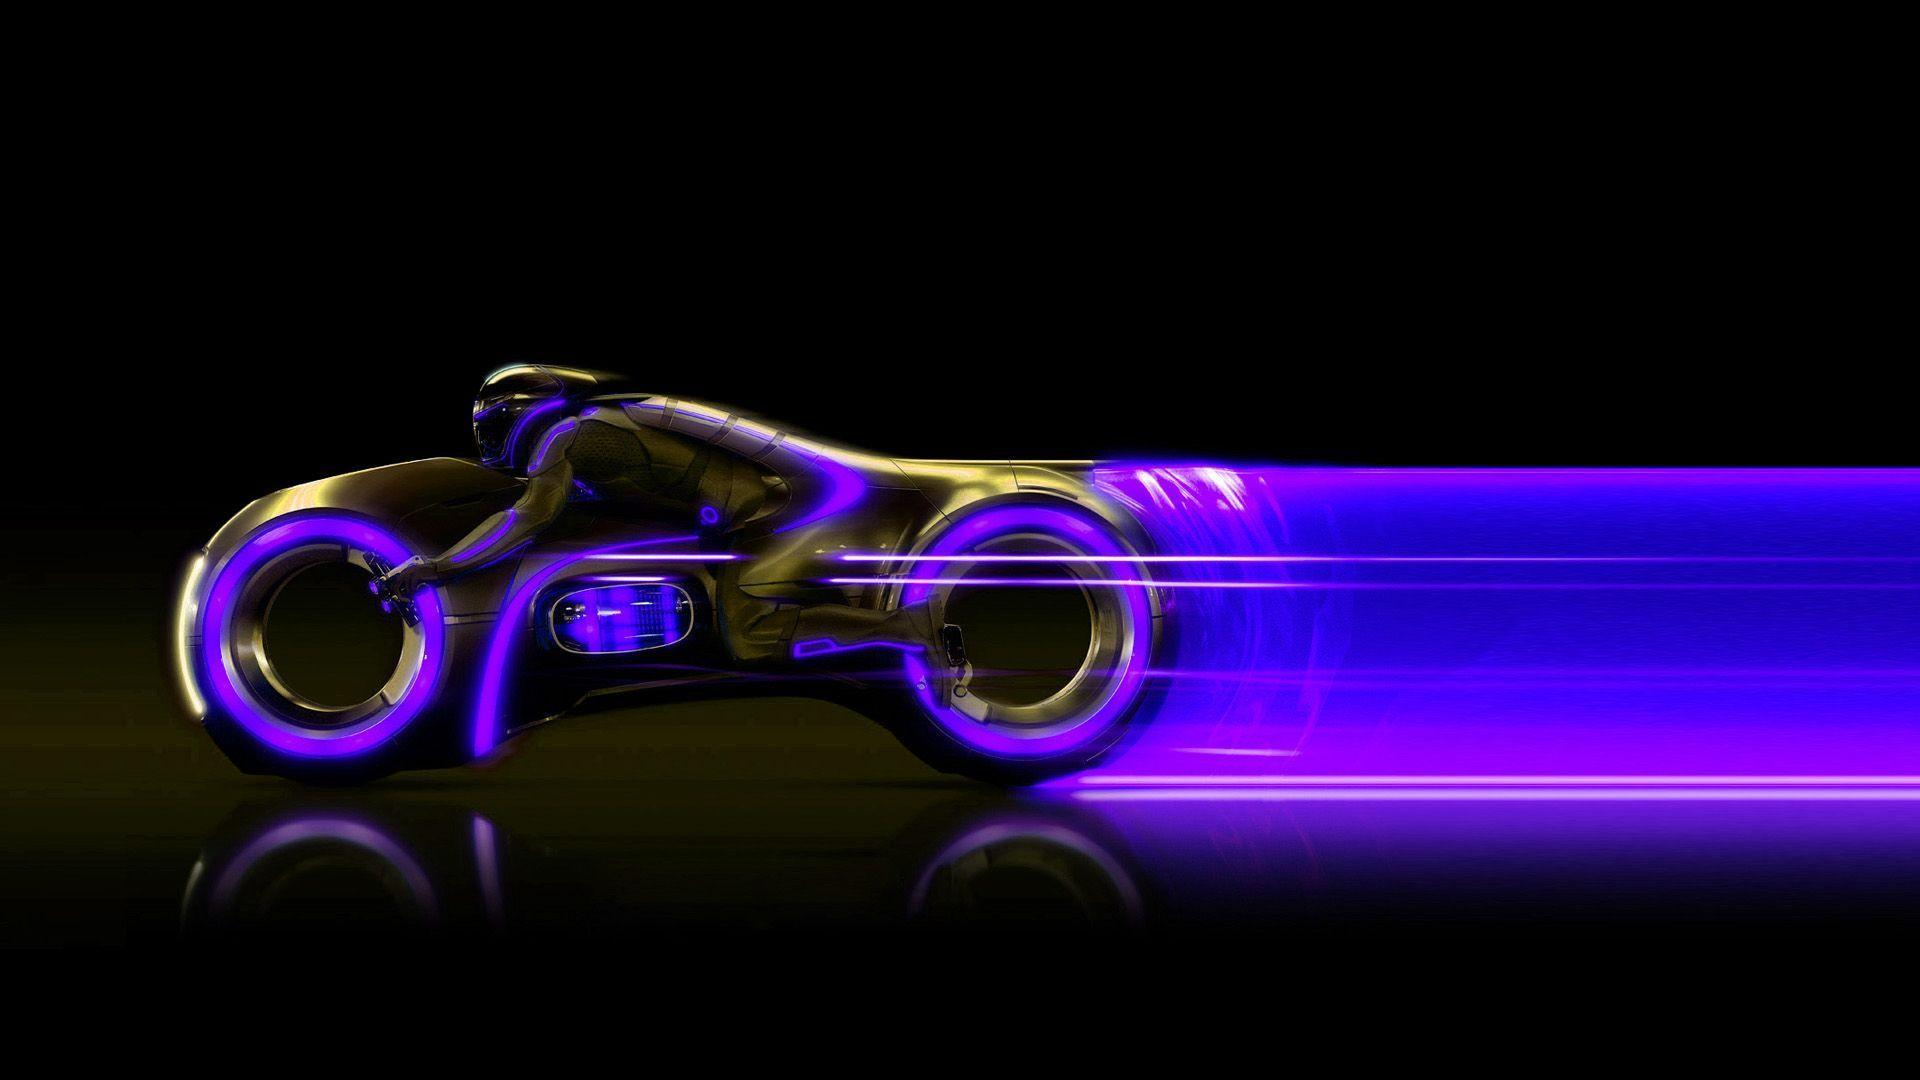 tron wallpaper hd style - photo #33